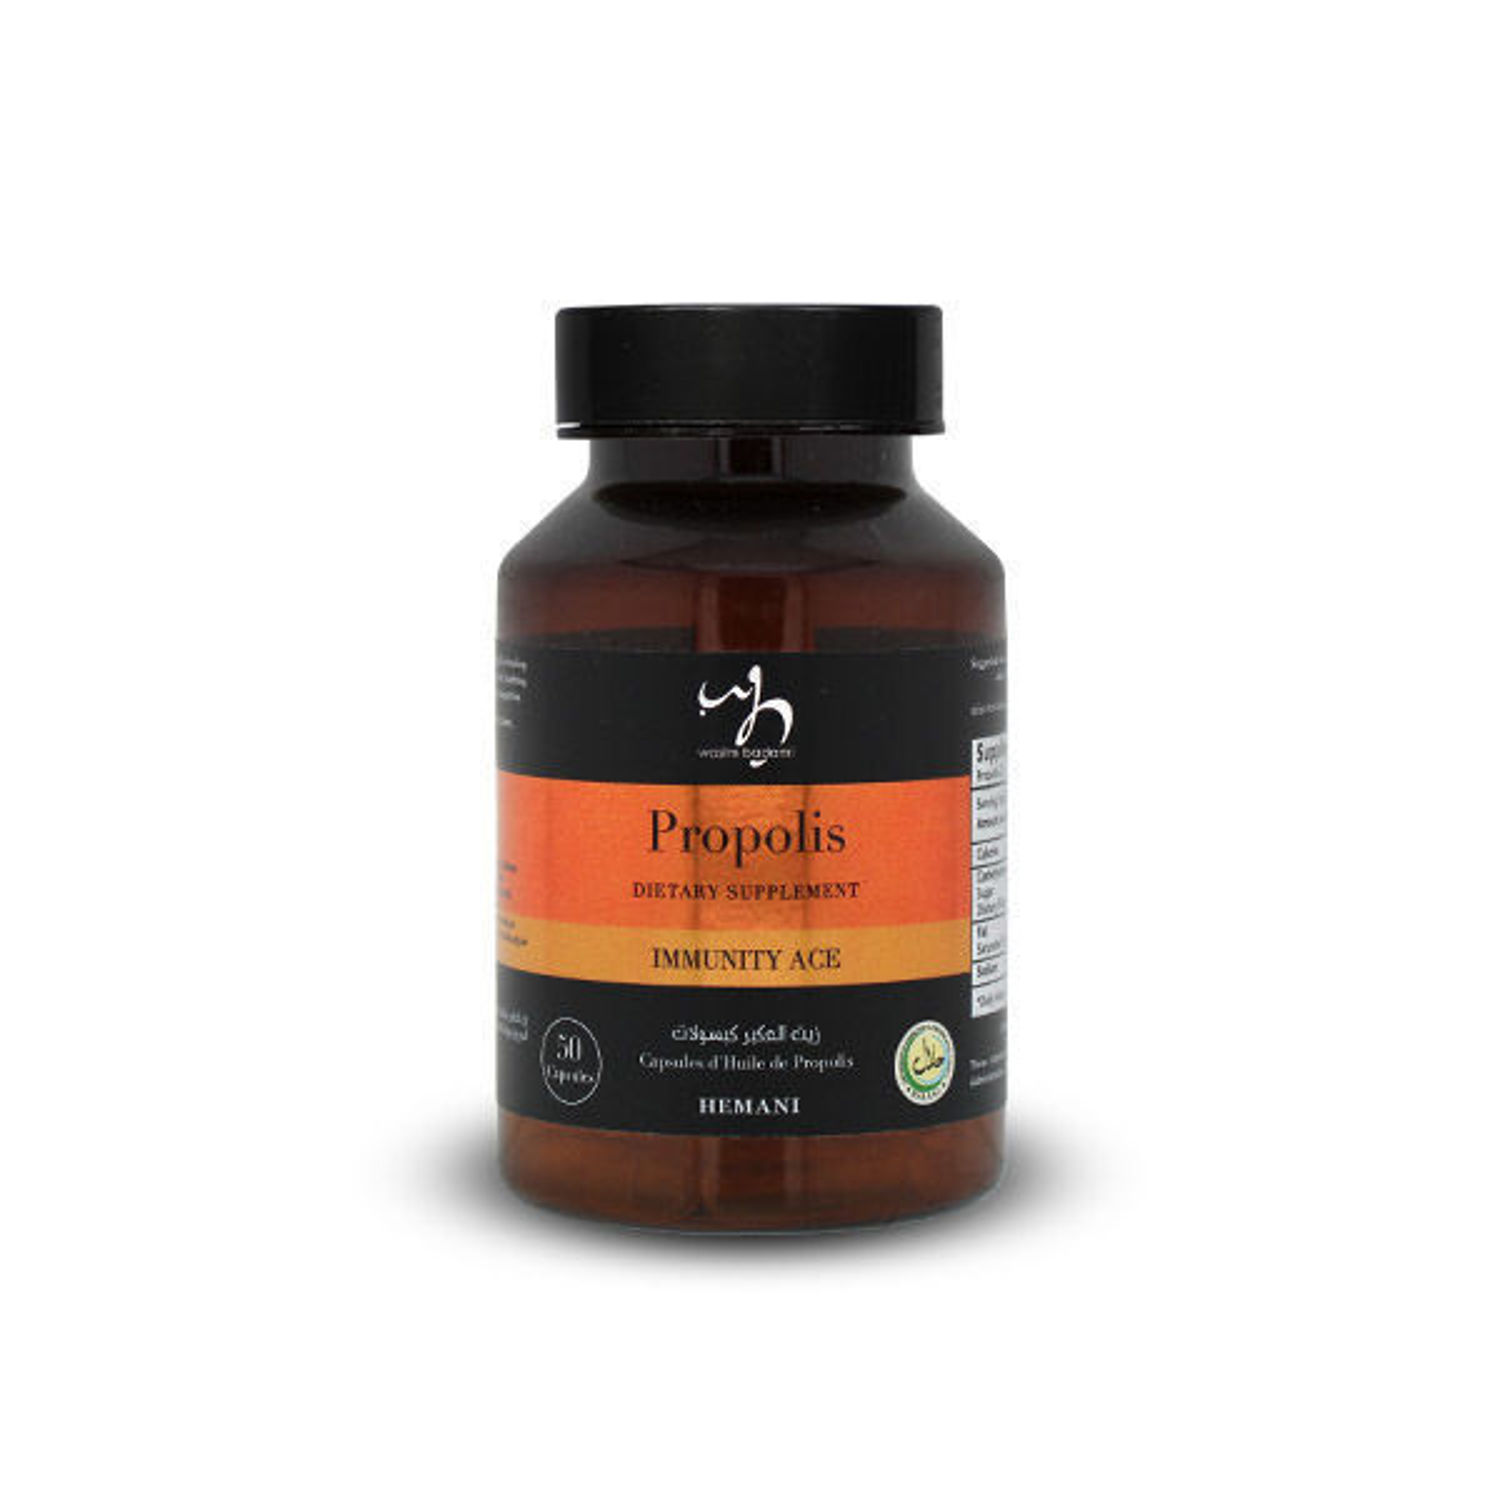 WB by Hemani Propolis Oil Dietary Supplement